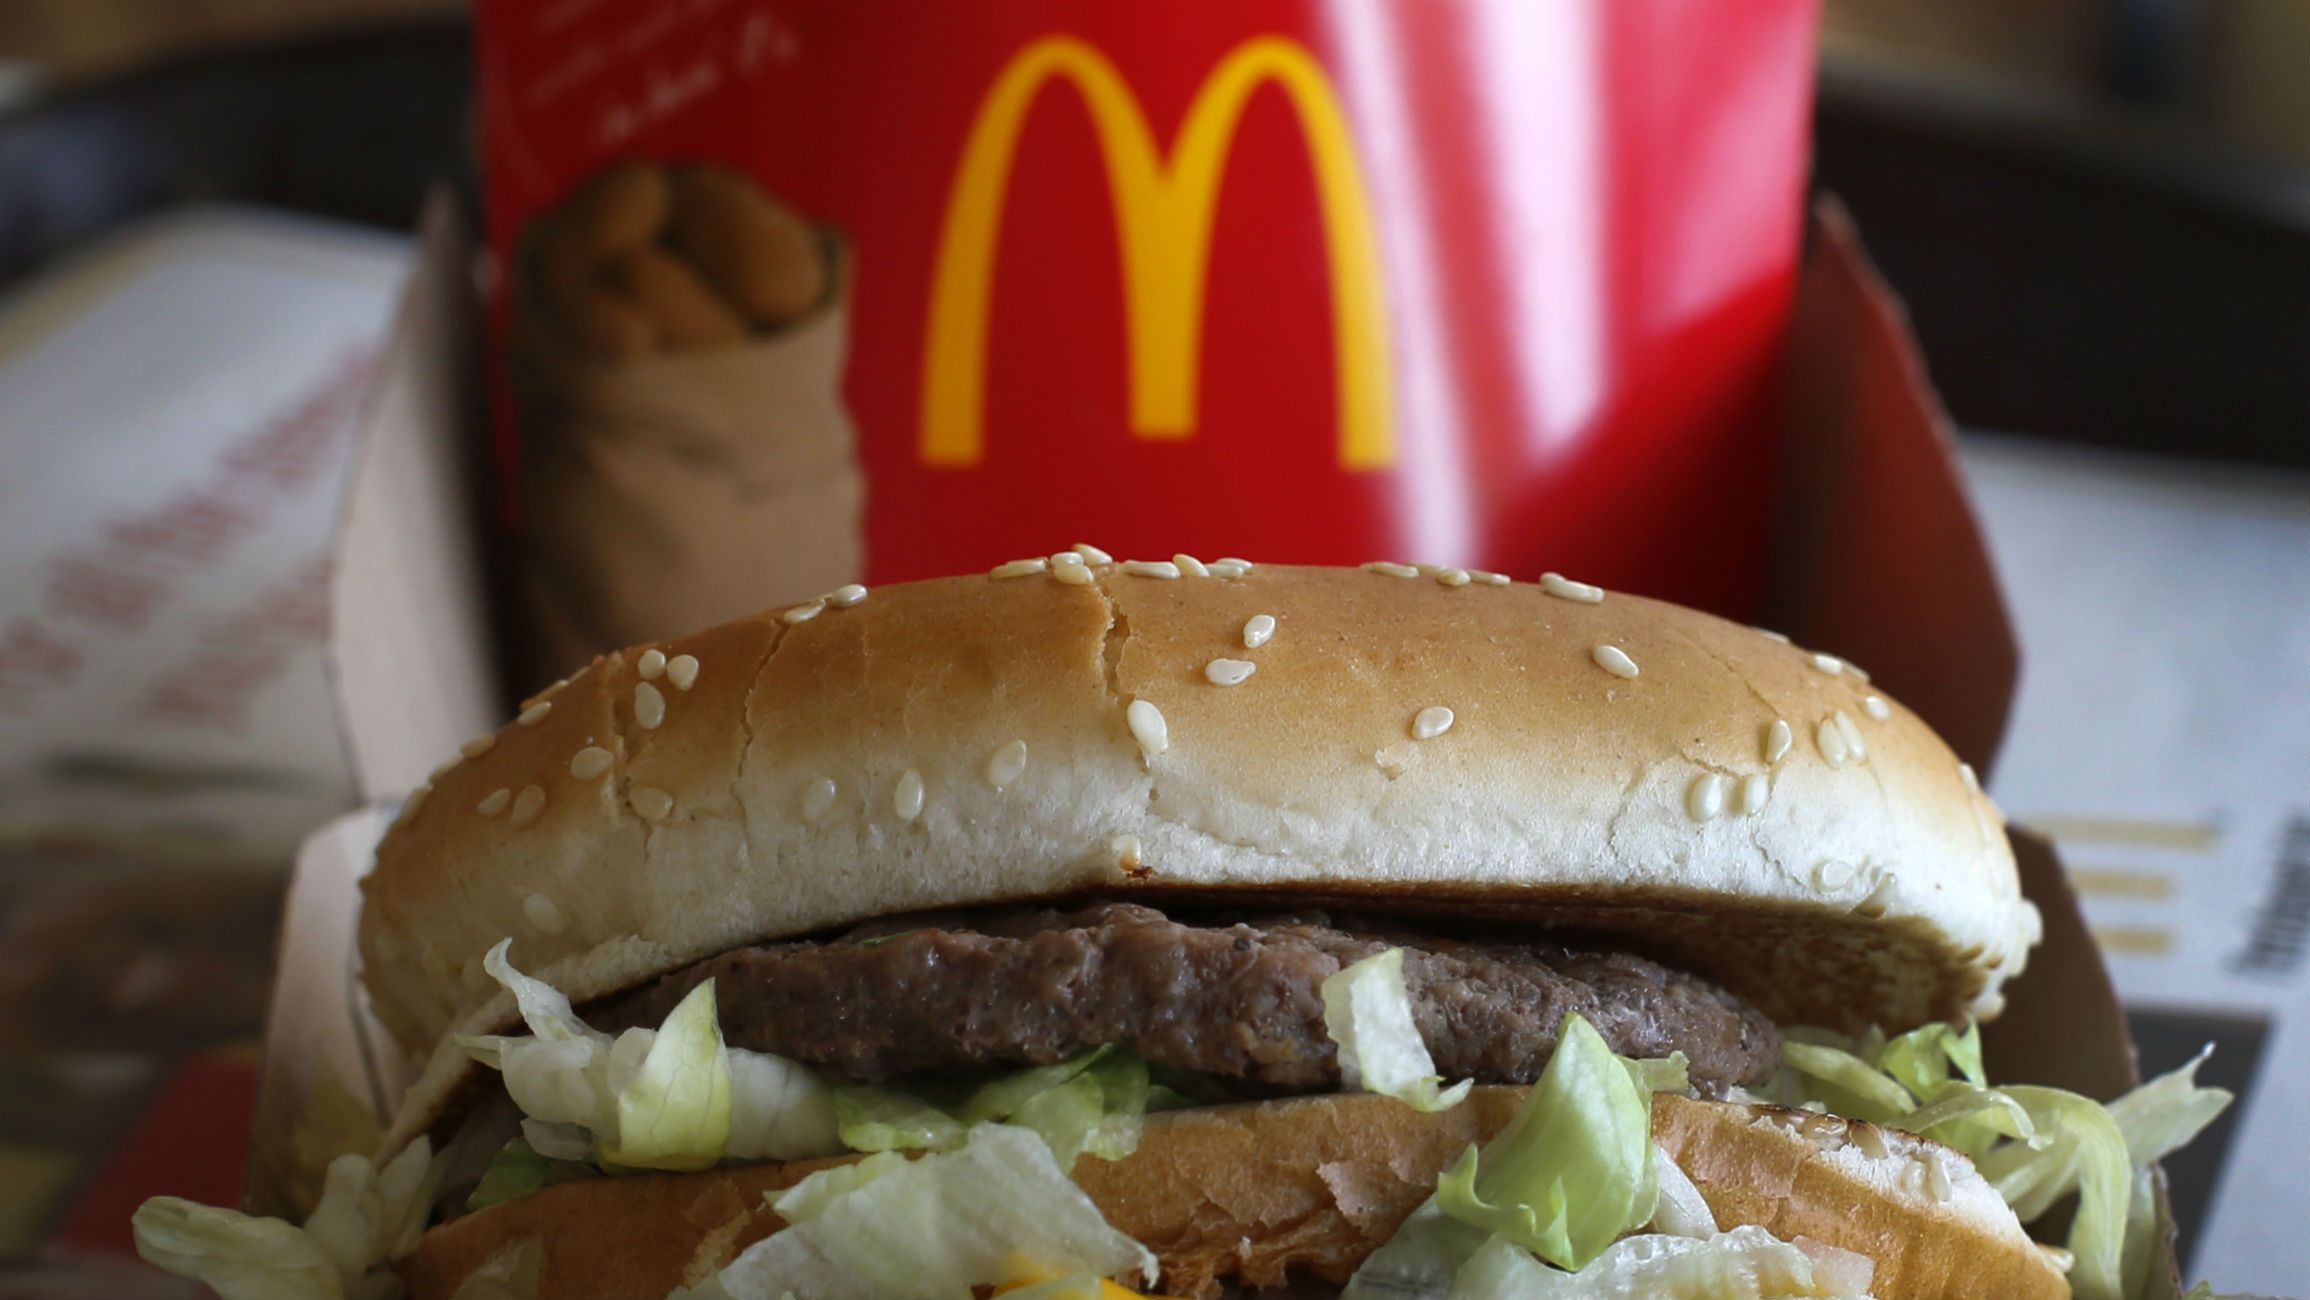 In this Tuesday, Jan. 21, 2014, photo, a McDonald's Big Mac sandwich is photographed at a McDonald's restaurant in Robinson Township, Pa.